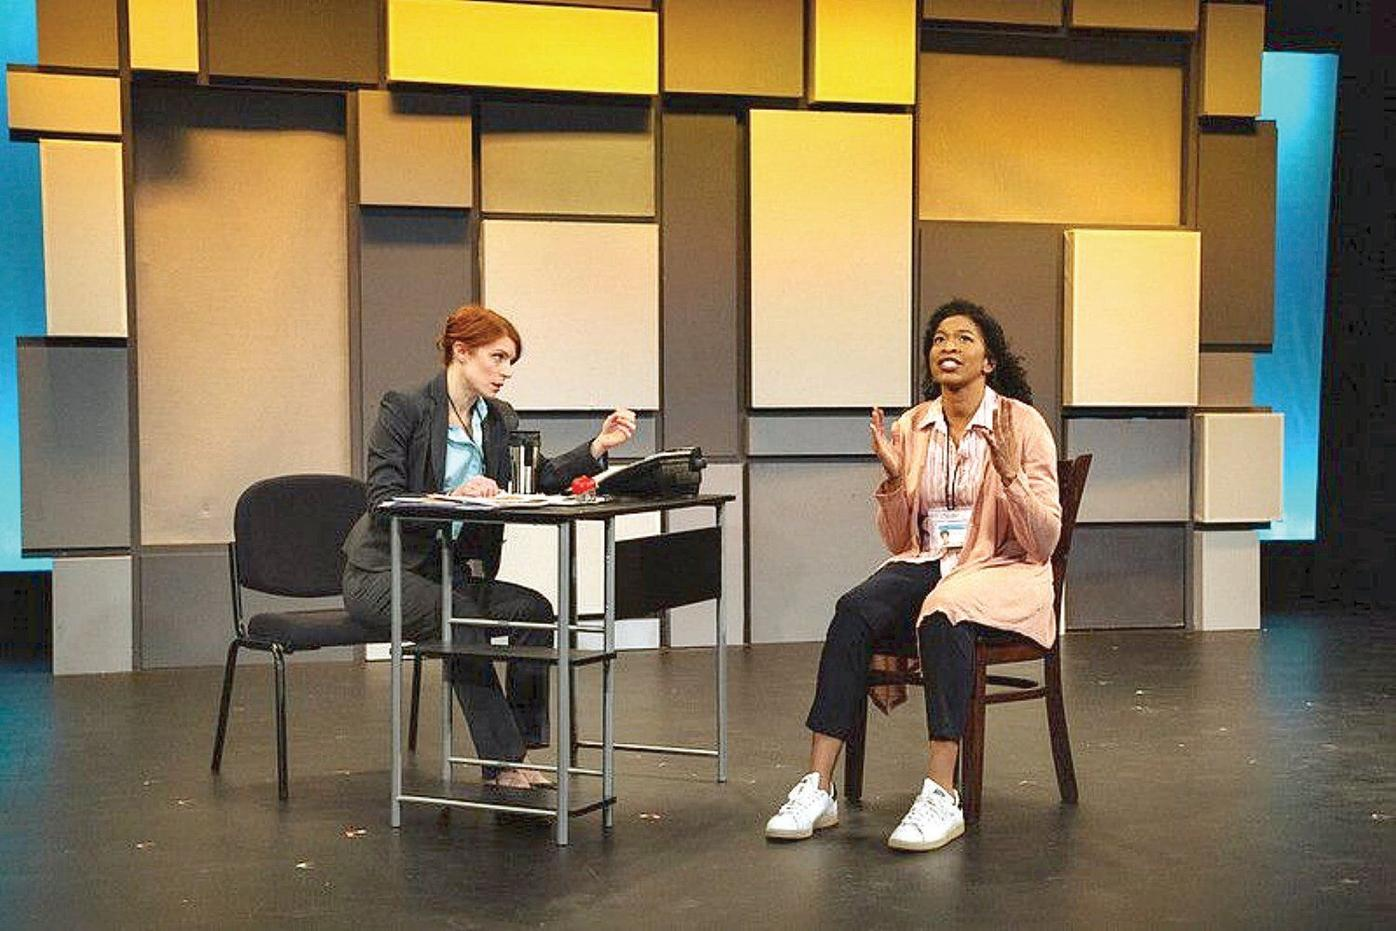 Theater review: Some ups, some not-so-ups in Barrington Stage Company's Ninth 10X10 New Play Festival